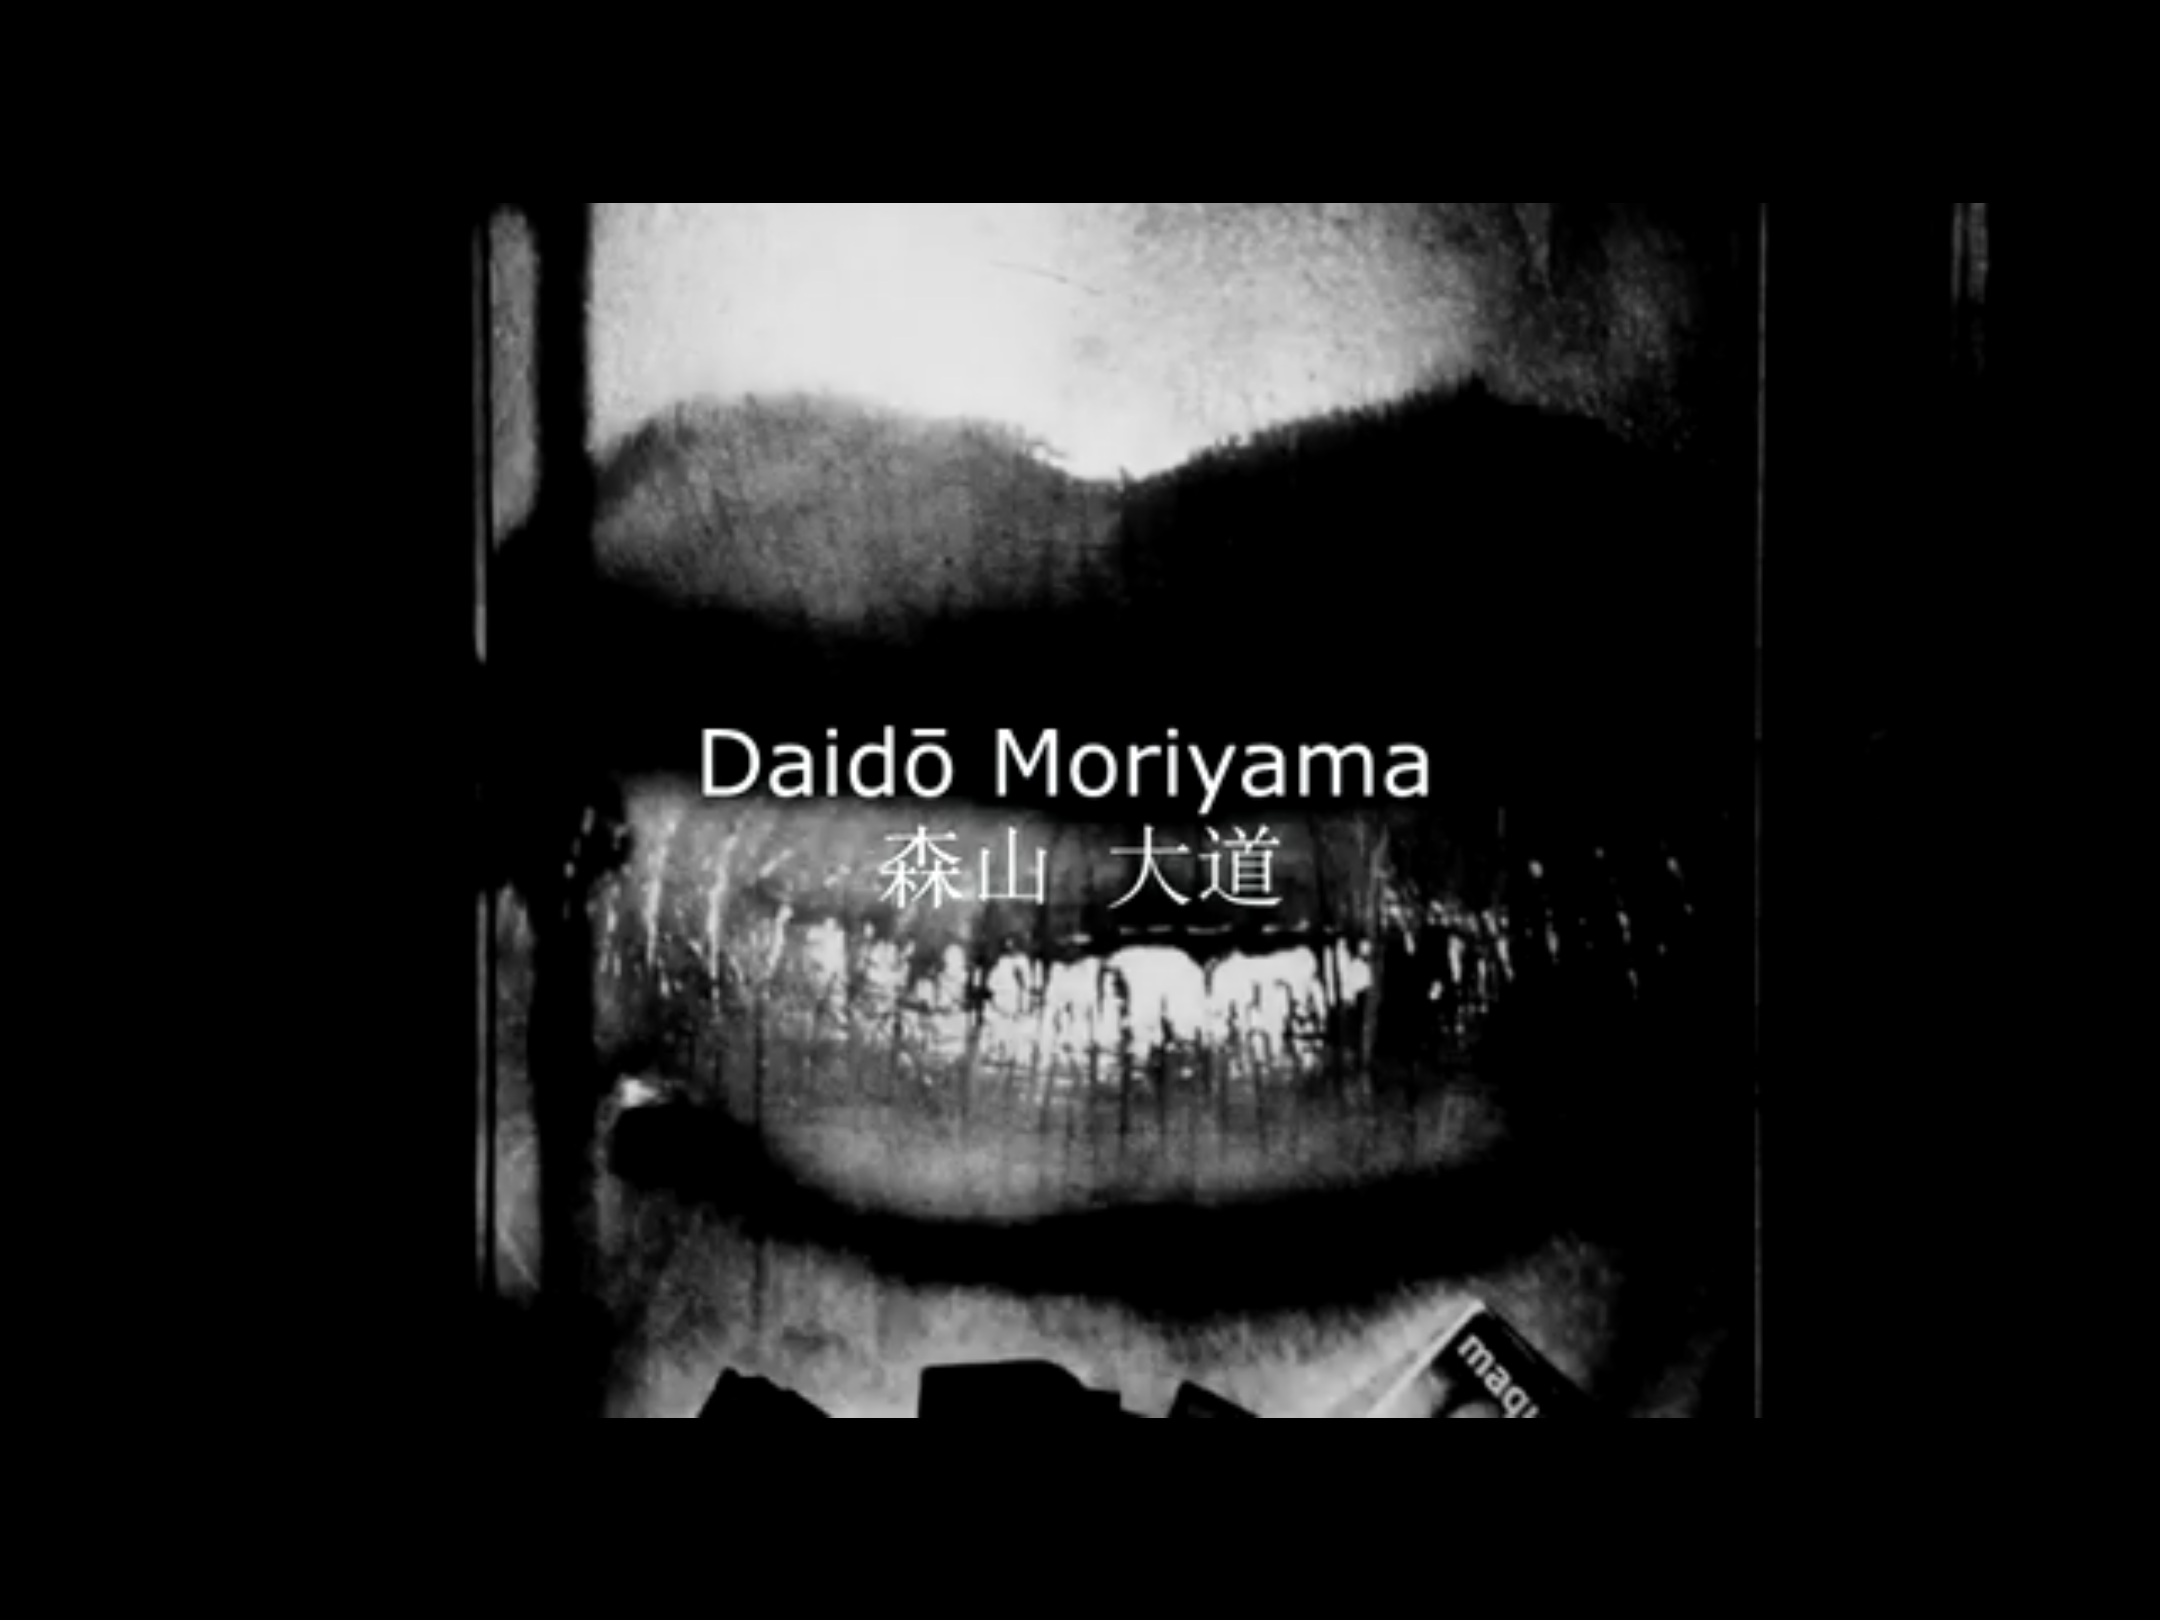 Daido Moriyama is a Wealth of Gritty Street Photography Inspiration